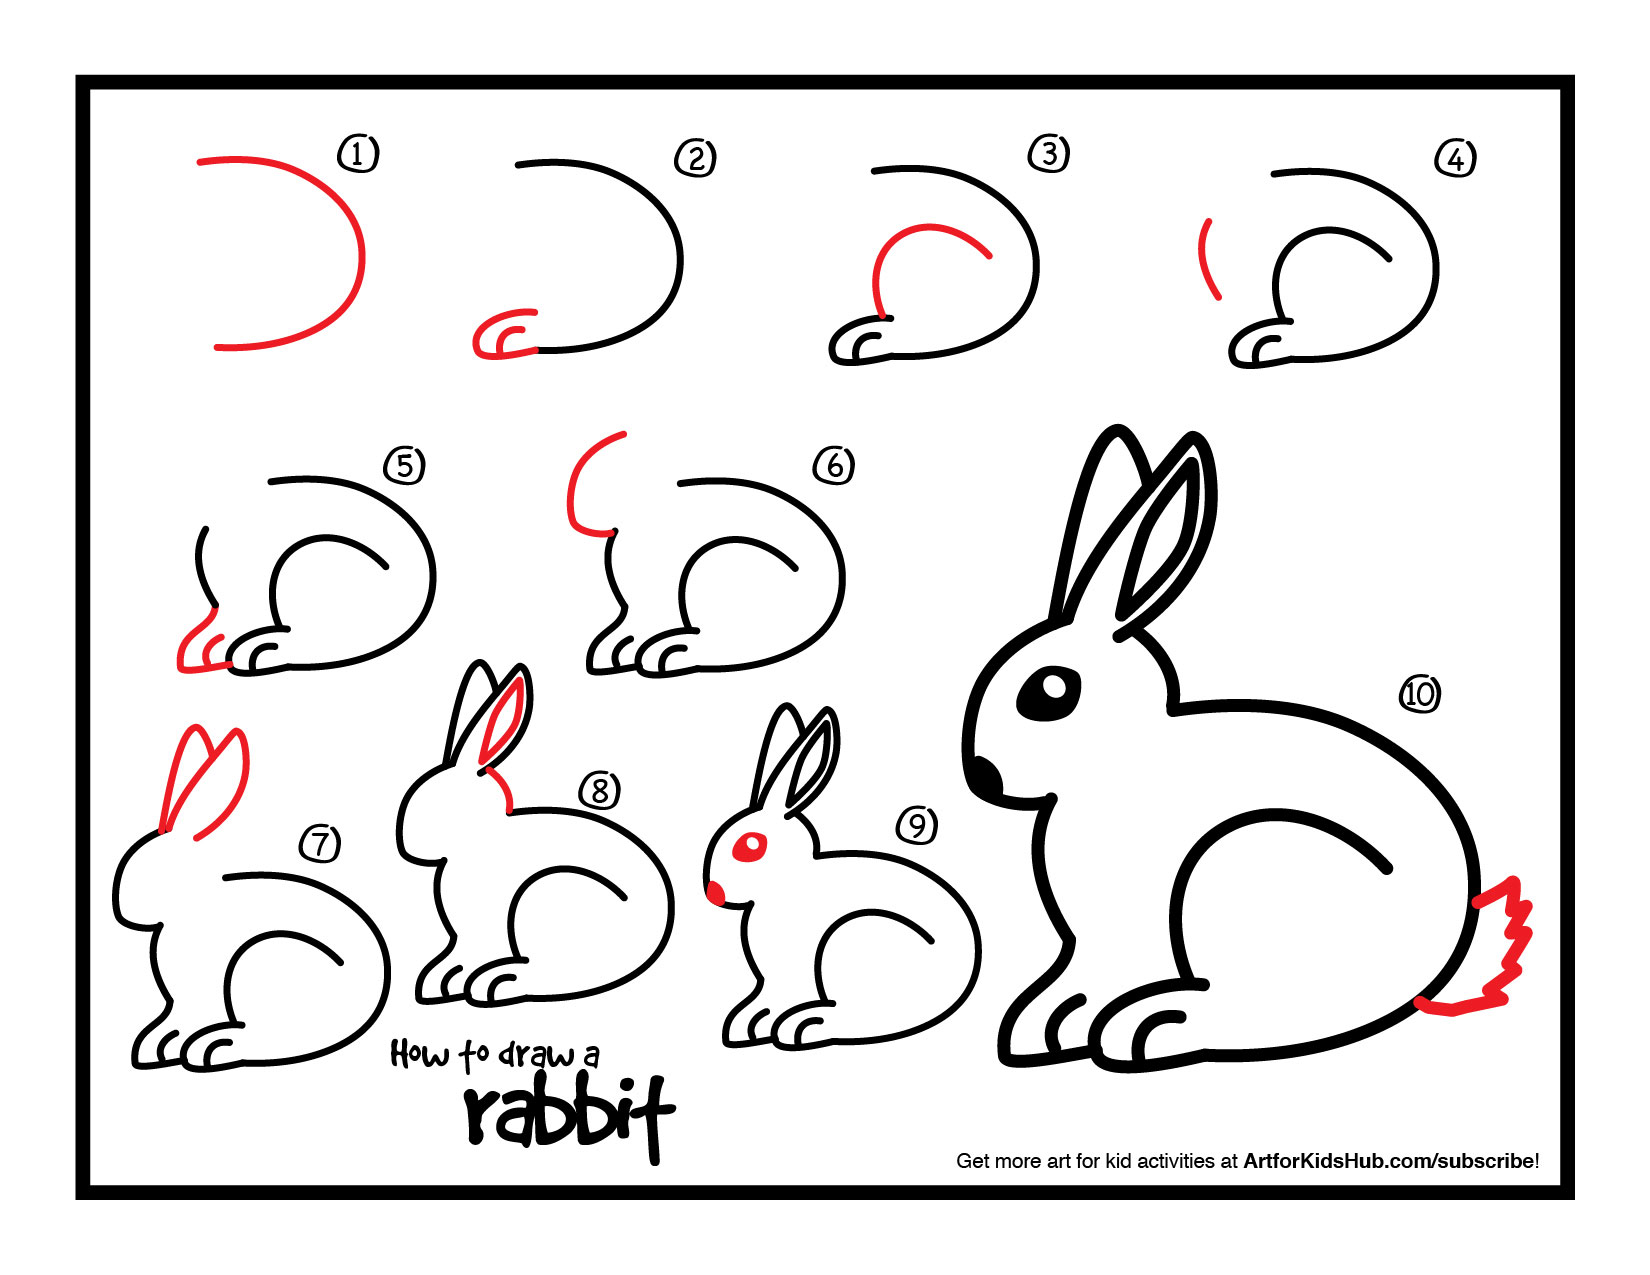 Drawn rabbit basic ALL Kids For A Art